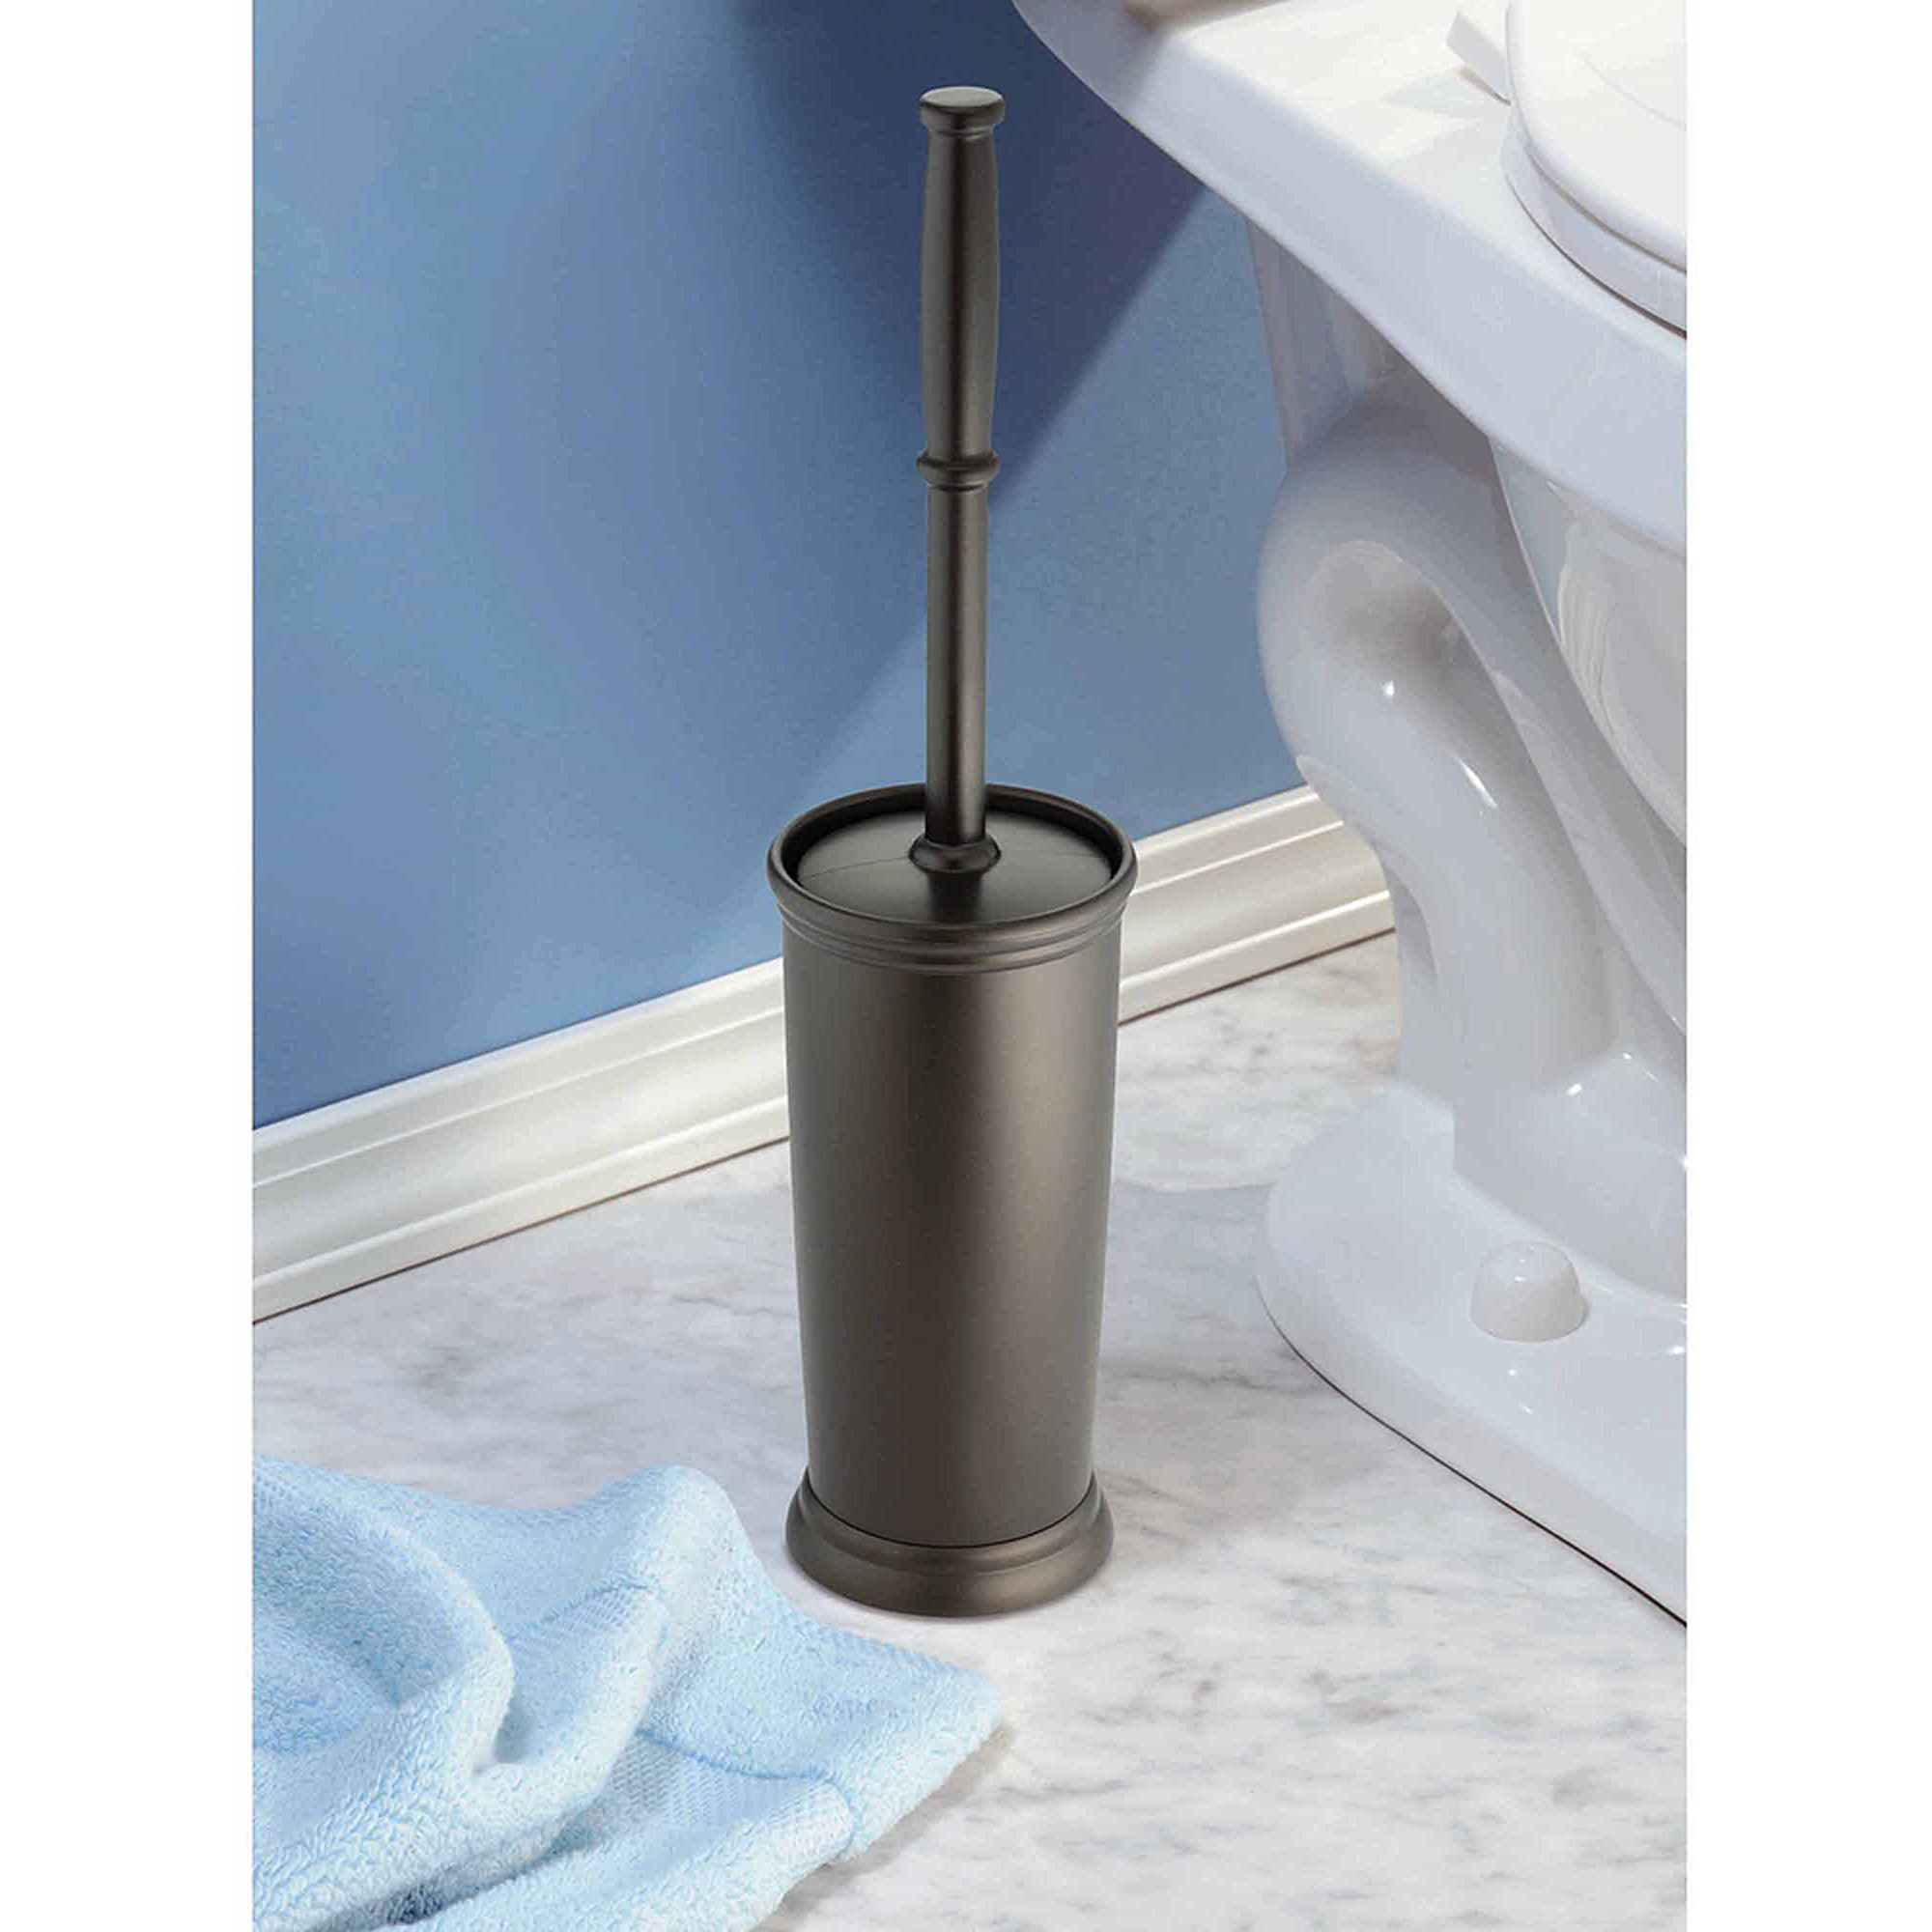 InterDesign Kent Bathware, Toilet Bowl Brush and Holder for Bathroom Storage, Bronze